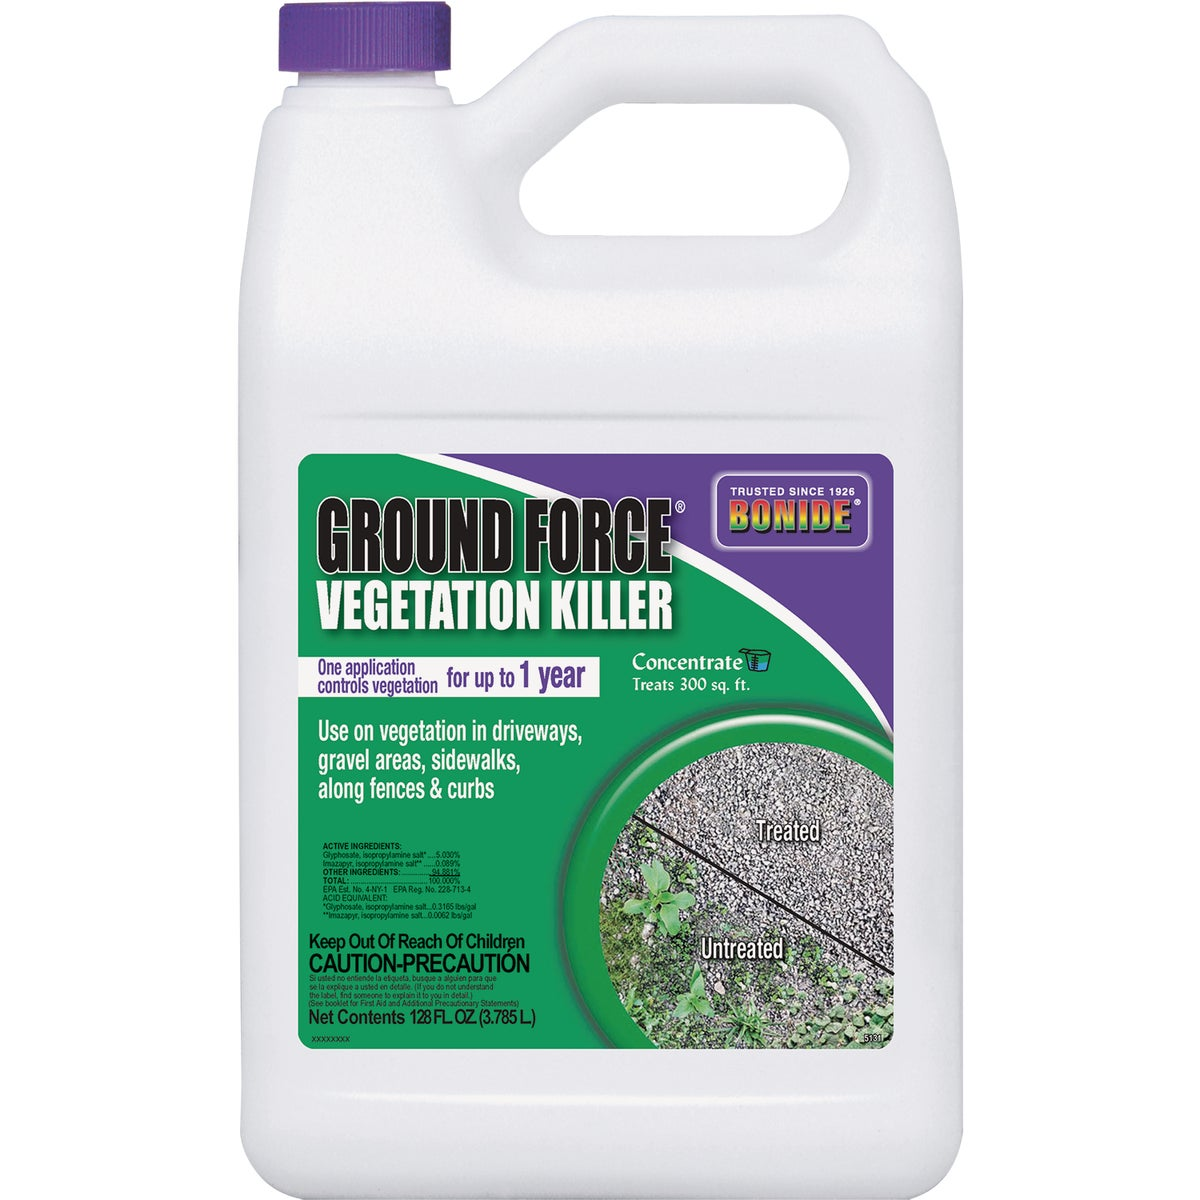 GAL VEGETATION KILLER